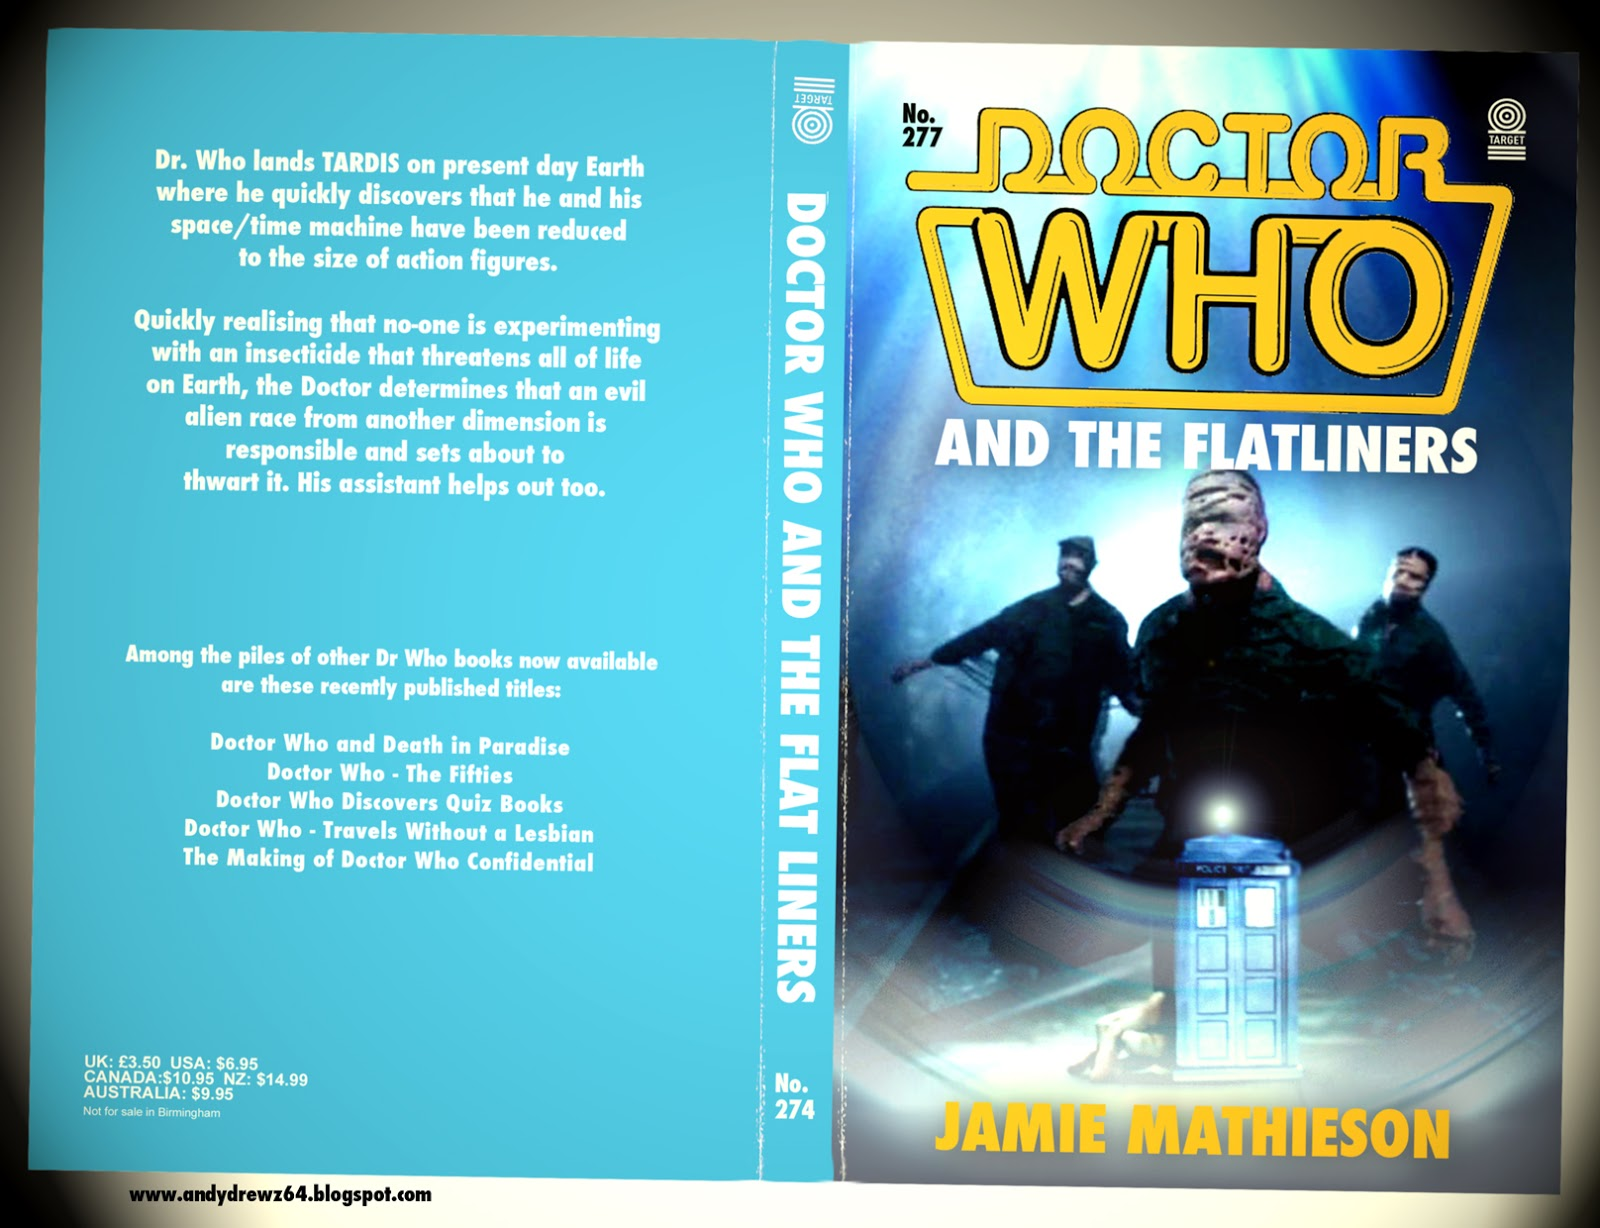 Book Covering Contact Target : Andydrewz s pages even more complete doctor who target